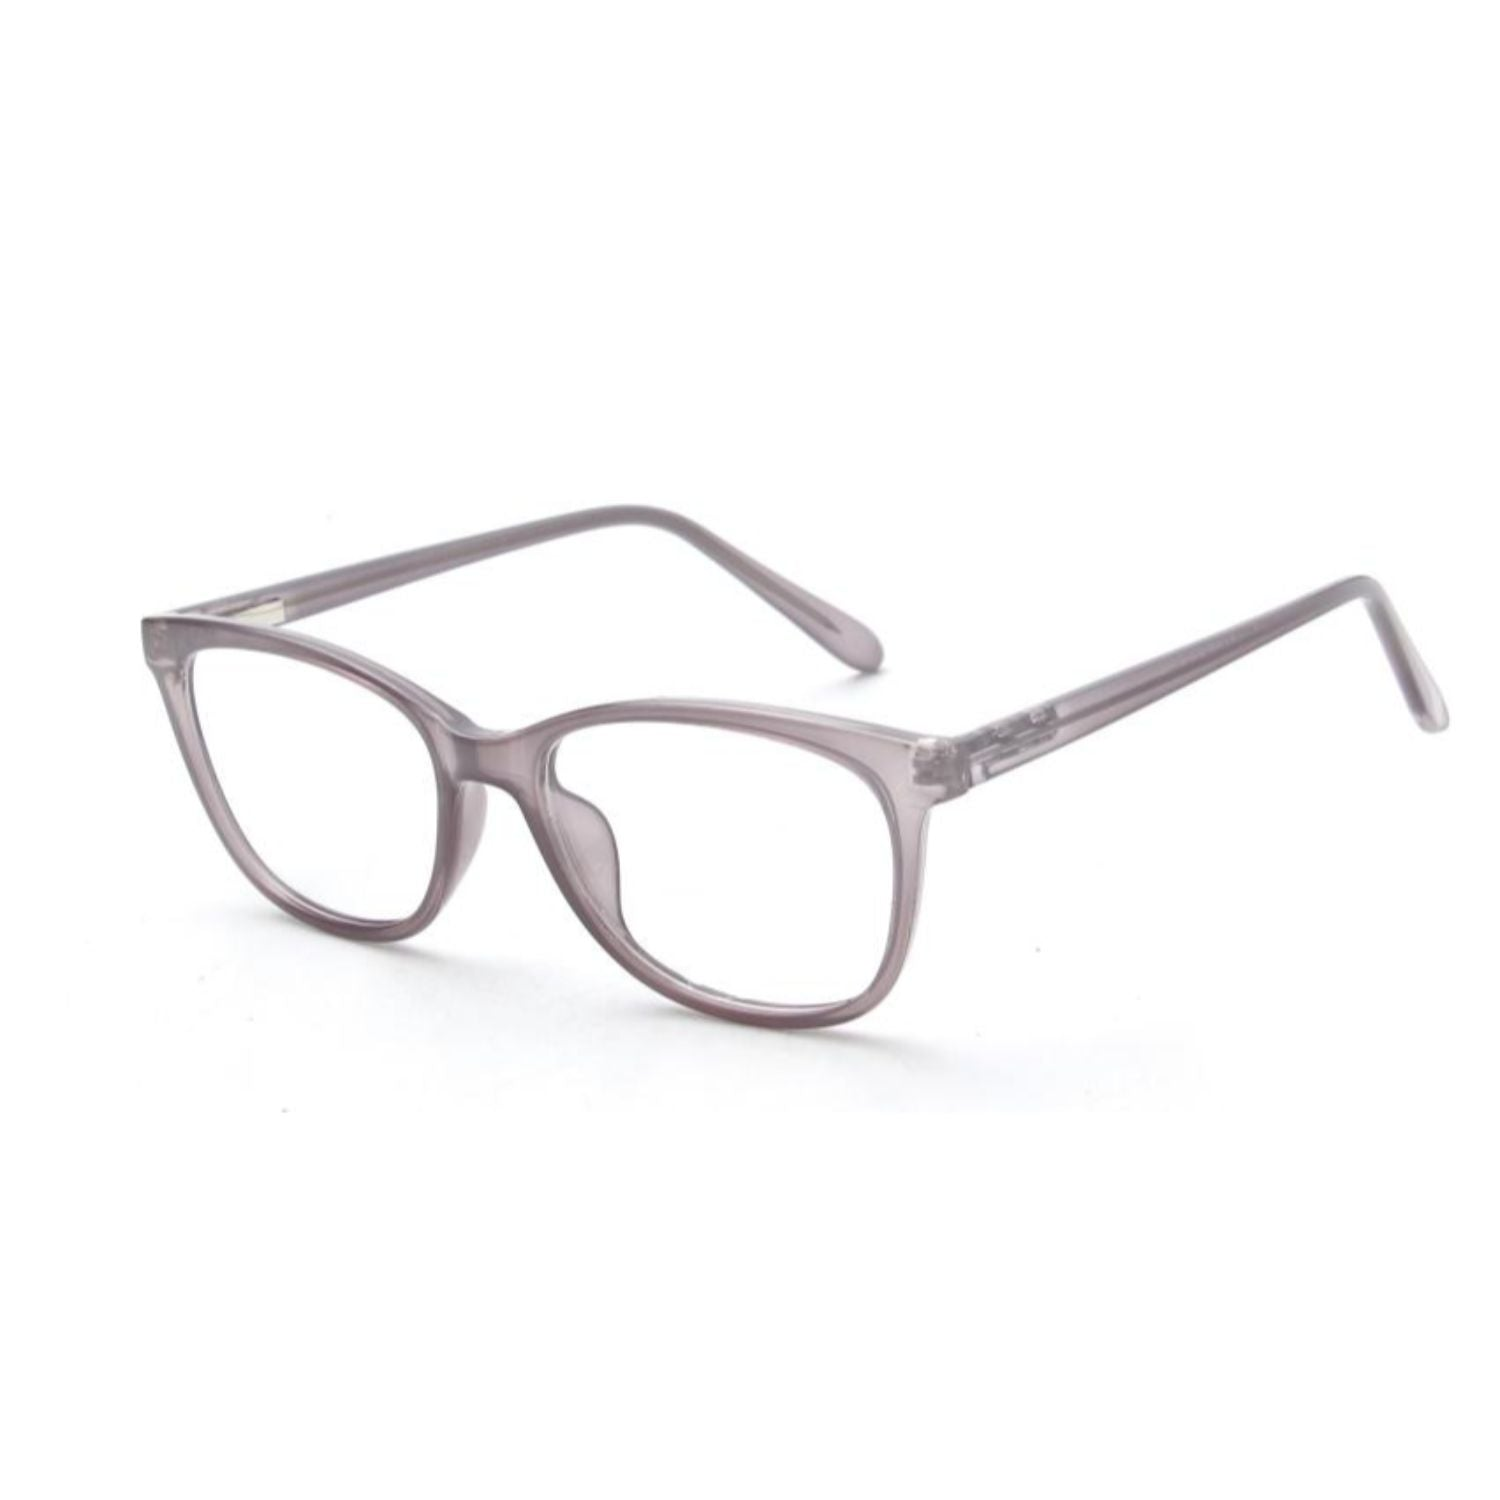 OTR26 - Fashion Cat Eye Optical Glasses - Iris Fashion Inc. | Wholesale Sunglasses and Glasses